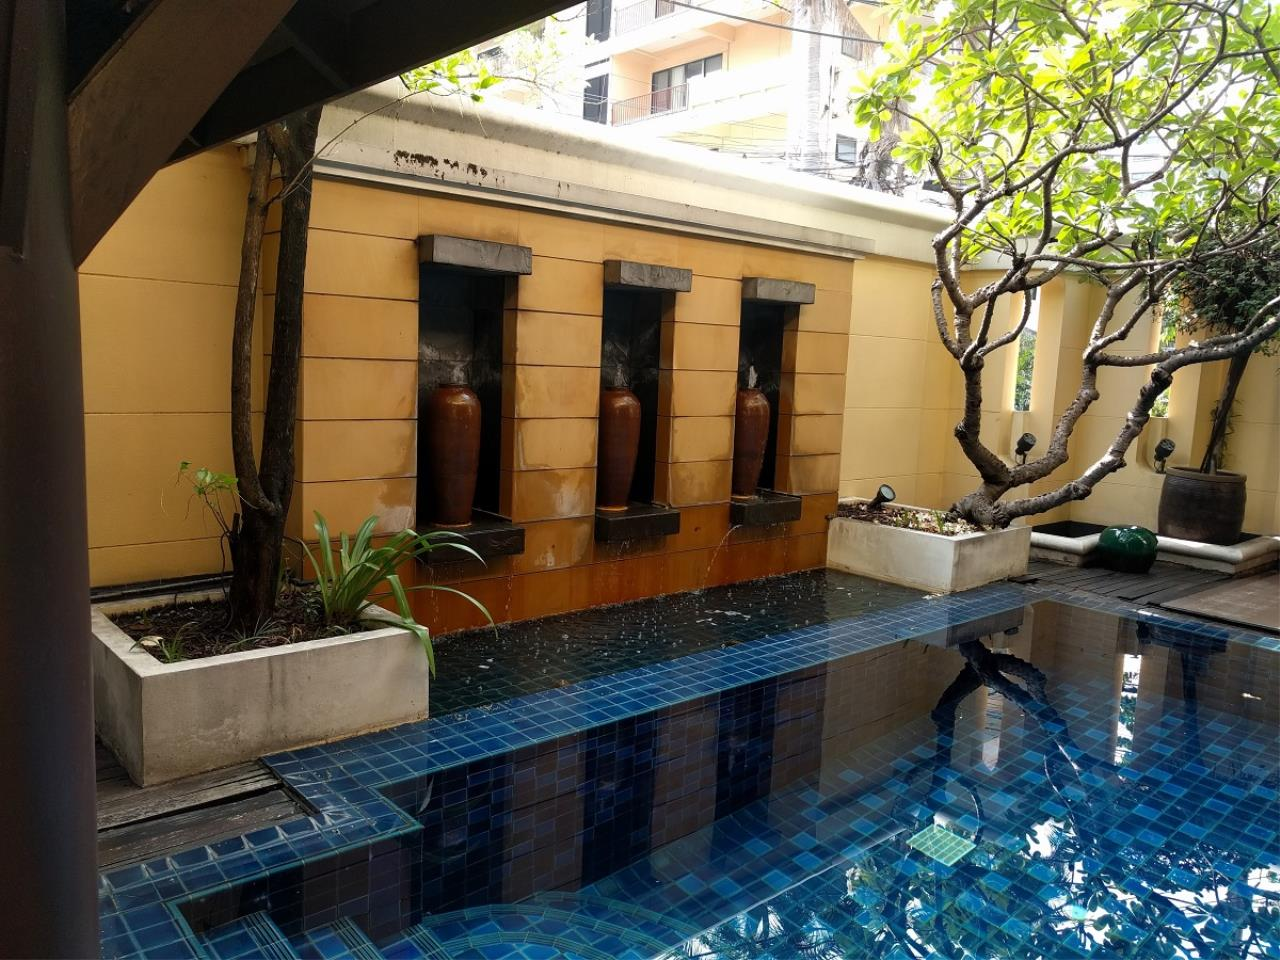 RE/MAX CondoDee Agency's Thai Elegance Luxury Condominium - Entire Building for Sale 31